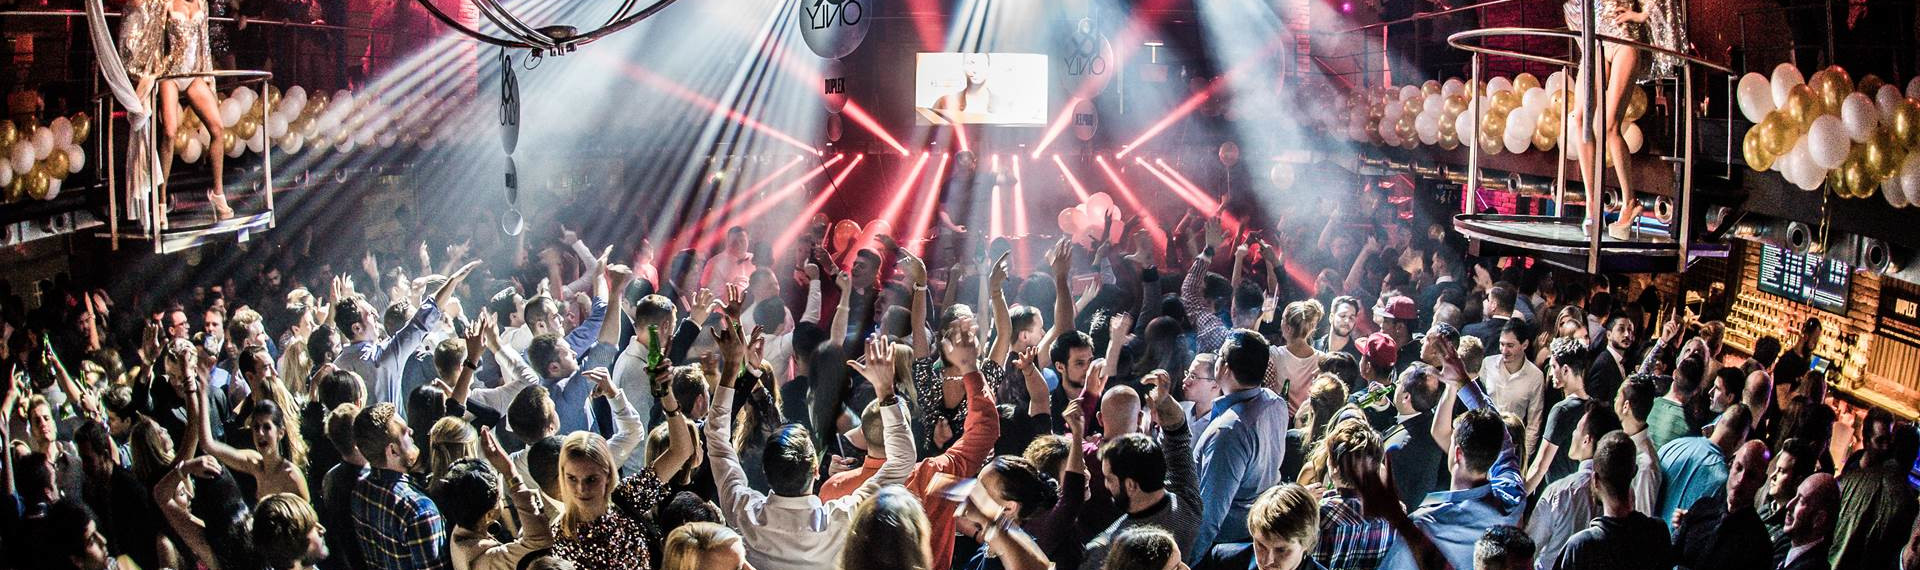 VIP-Nacht Prag | Party in den besten Clubs in Prag